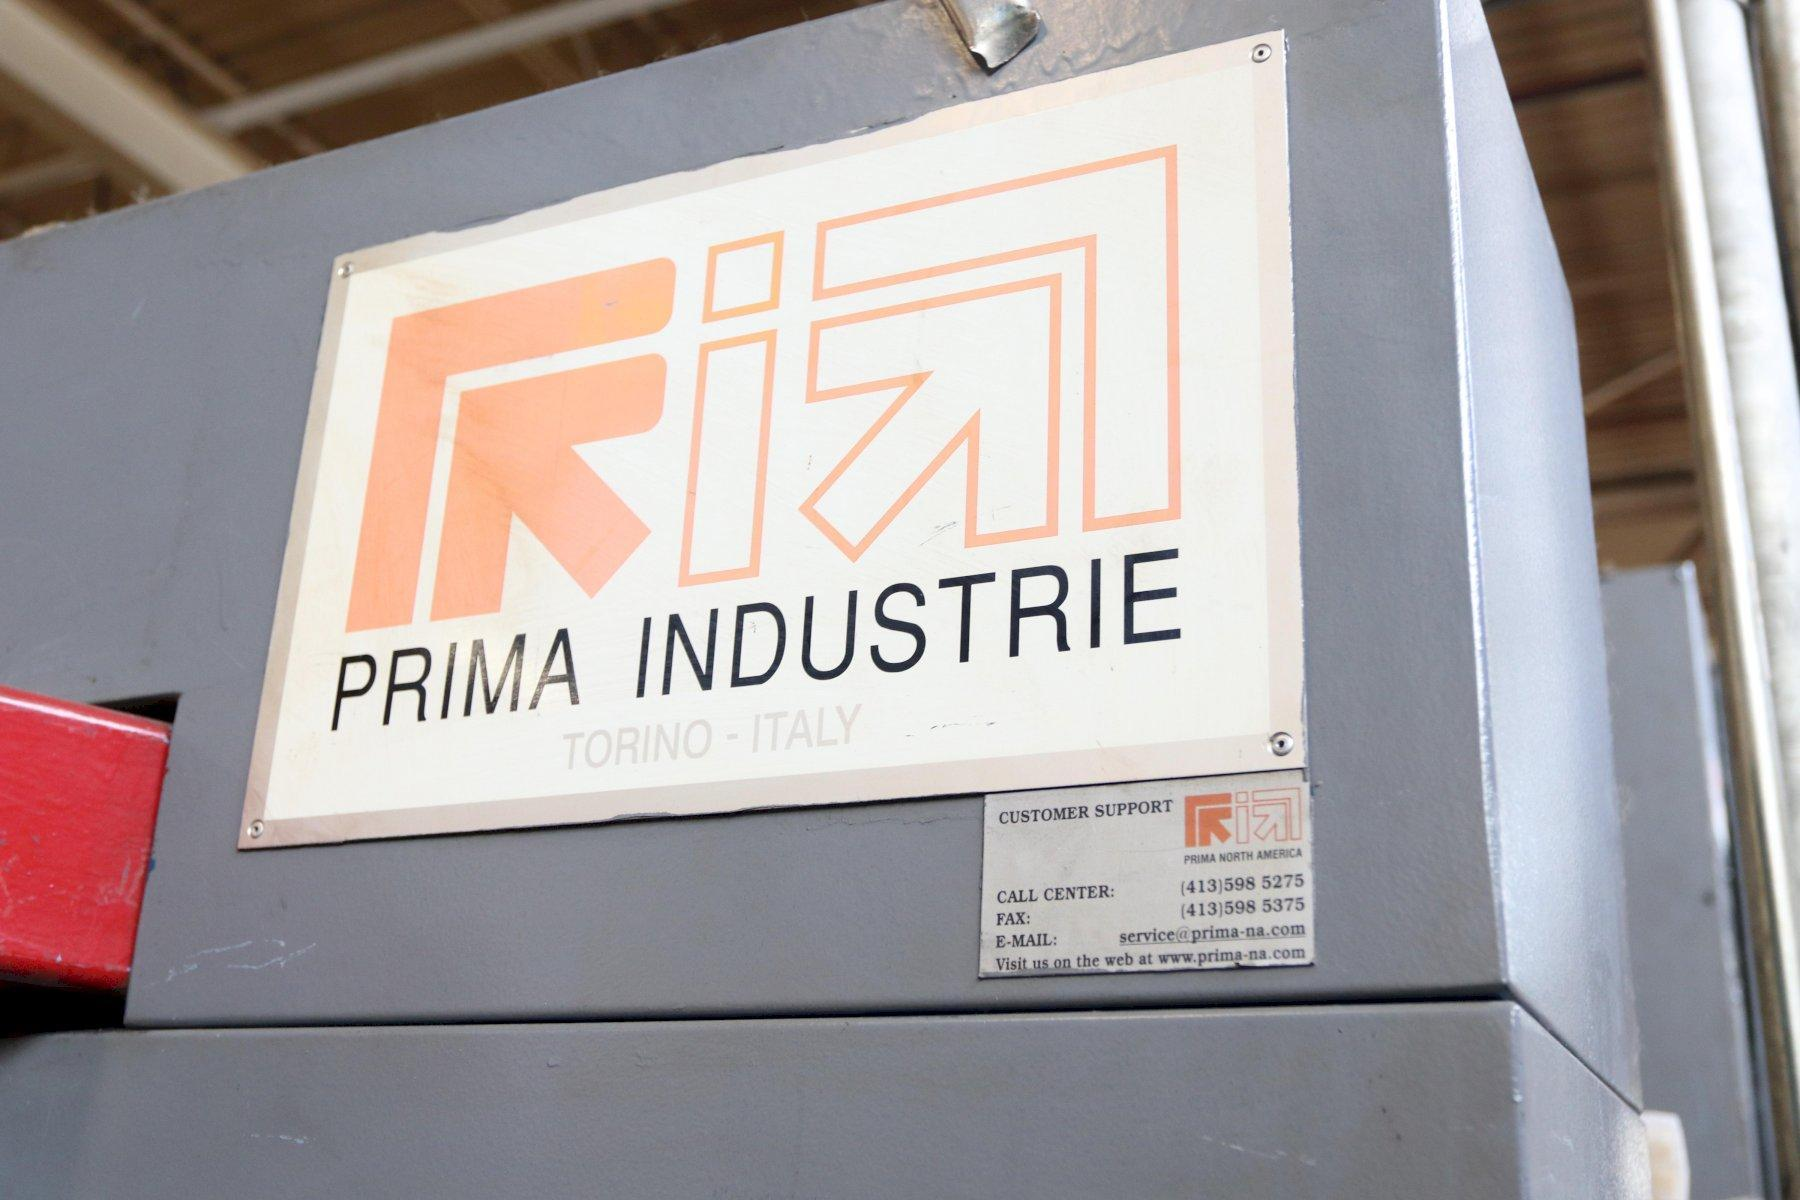 3500 WATT PRIMA MODEL #PLATINO 1530 HS LASER (2004): STOCK #12243